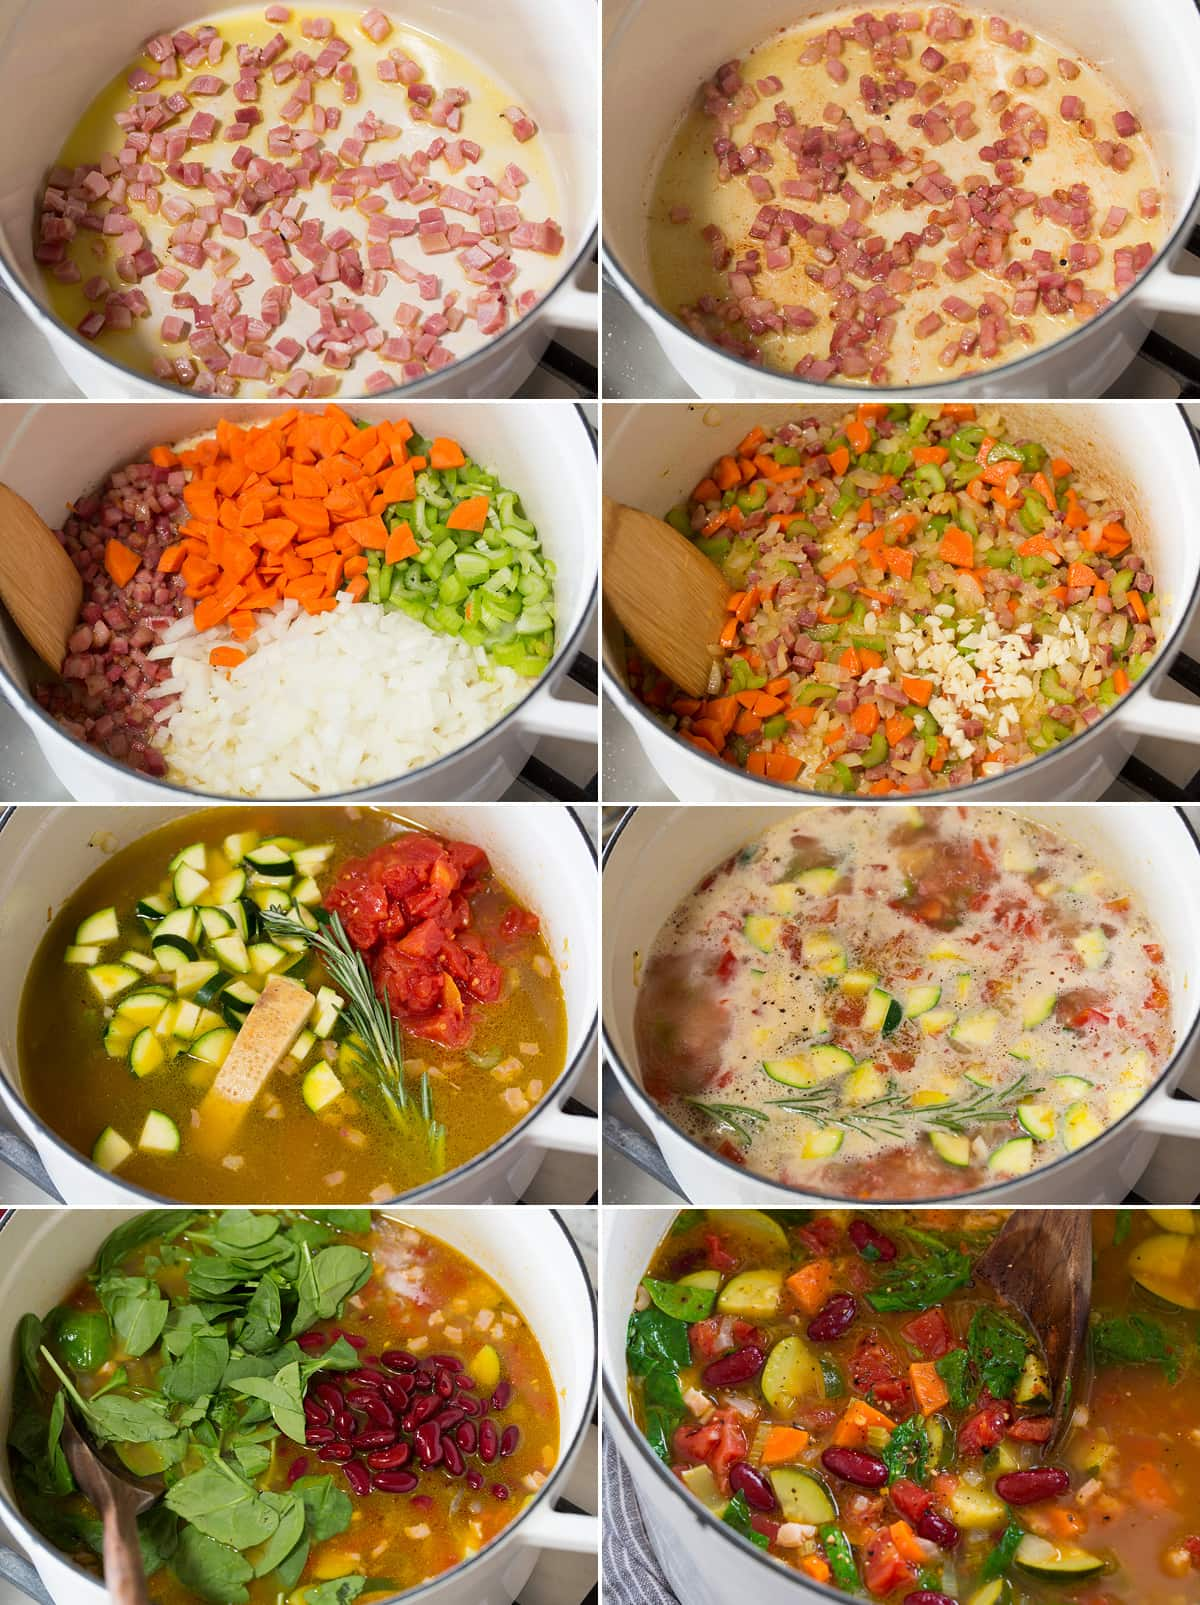 Collage of eight images showing steps to make minestrone soup in a pot on the stovetop.